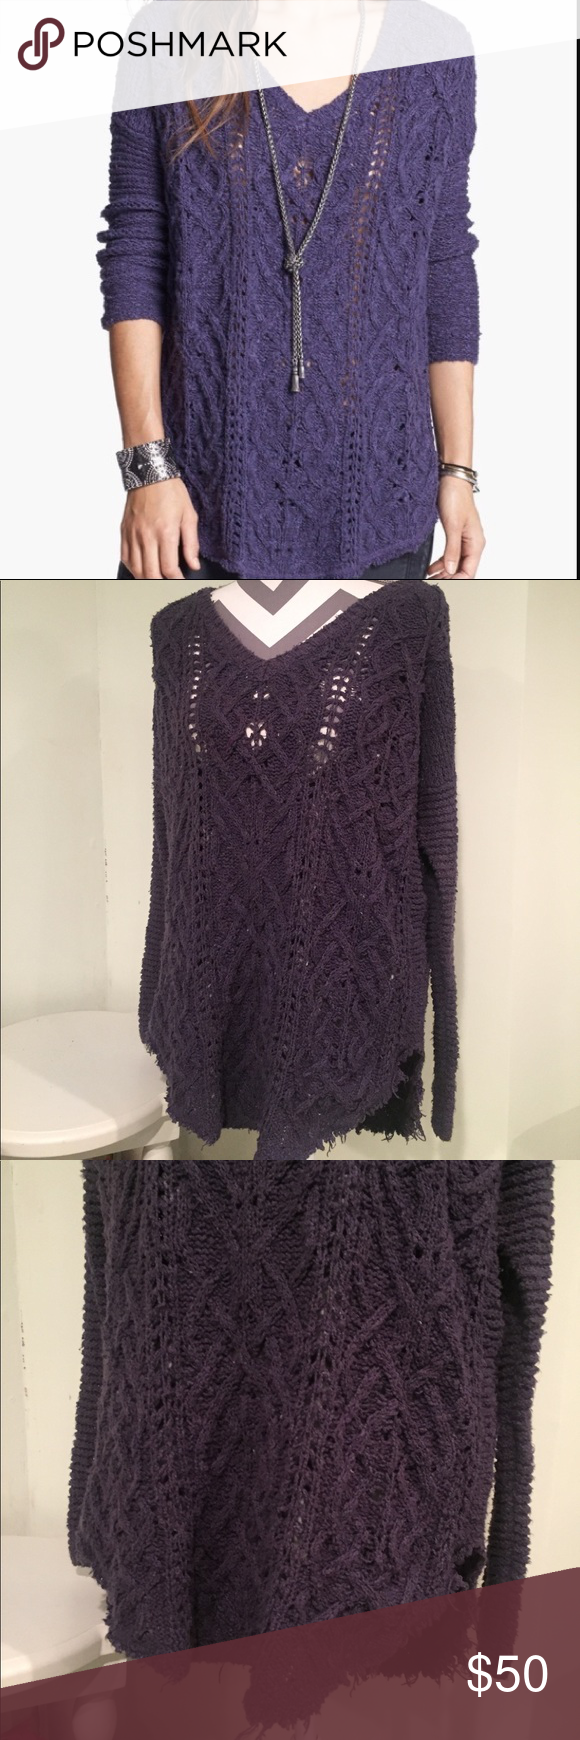 Free People Purple Sweater | Deep purple color, Fall season and ...